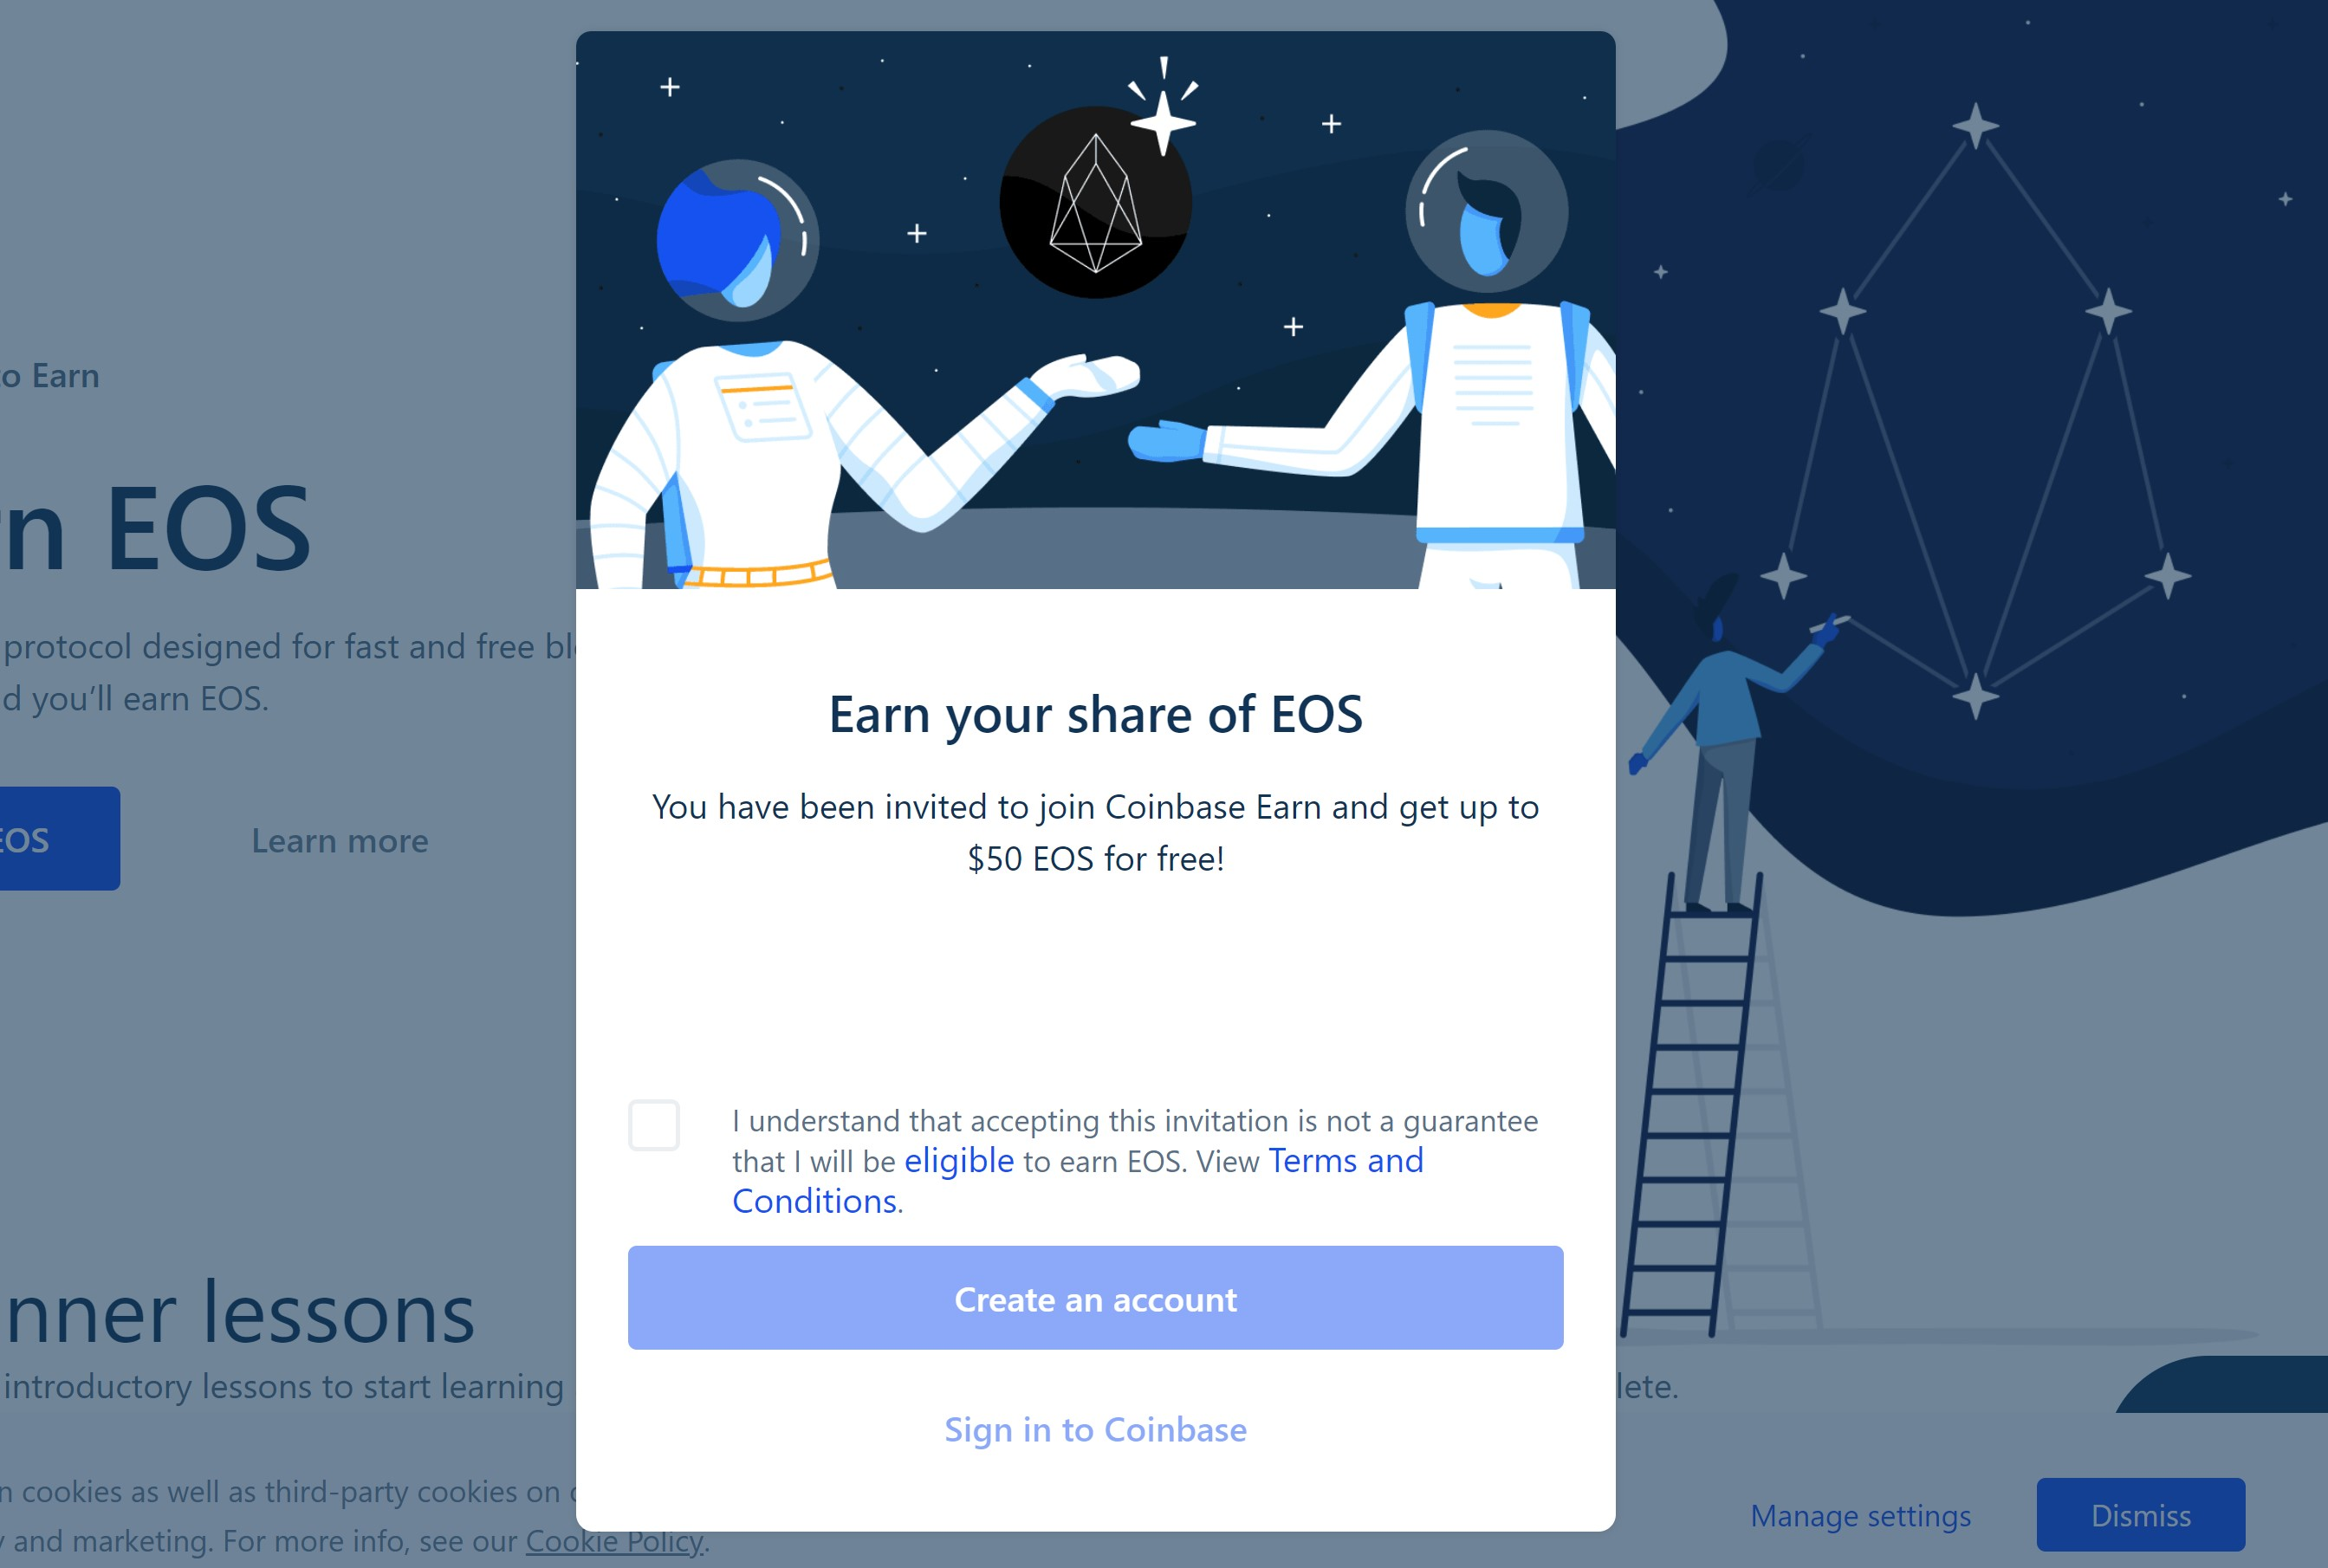 Earn $10 worth of EOS when you join using my link